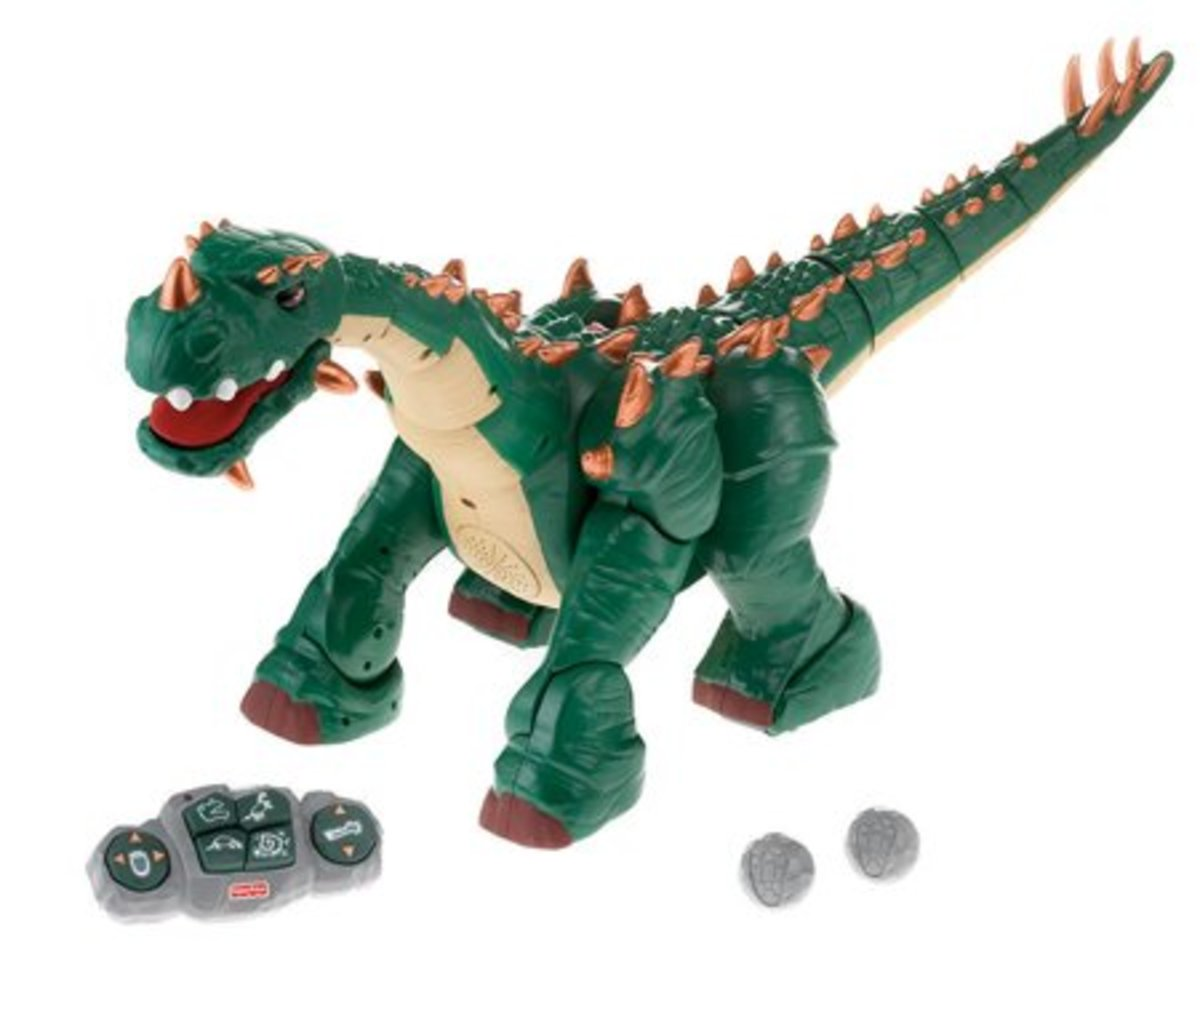 ImagiNext Spike the UltraDinosaur Toy Review